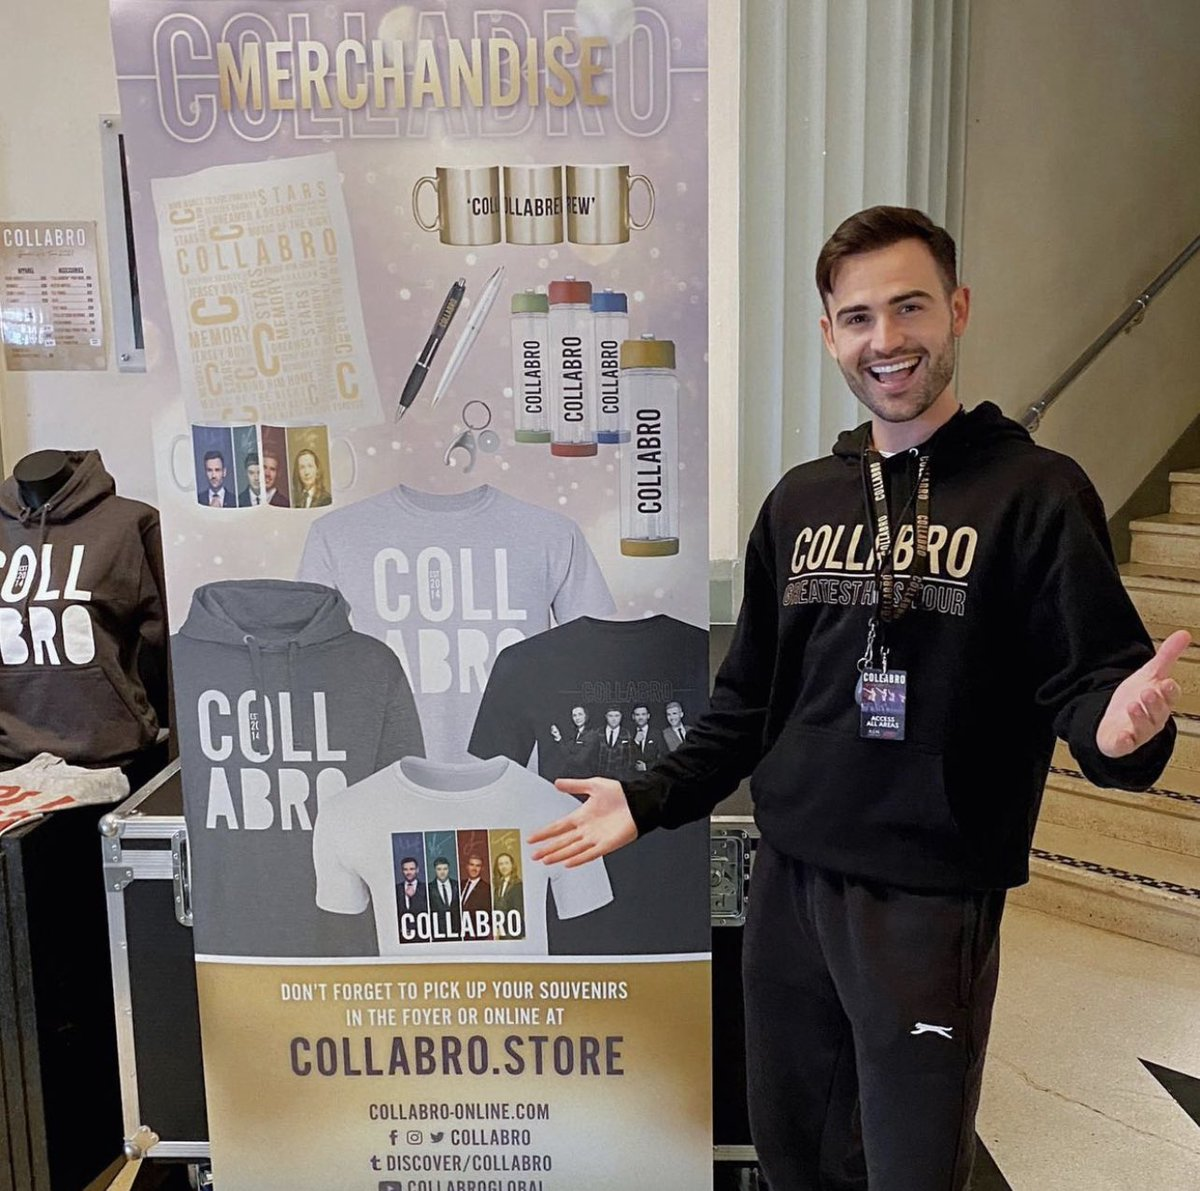 Have you visited the #CollabroTour merchandise stand when you've been to see the show? Let us know what you picked up/your favourite items 🙌 Don't forget to tag us in your pics of you wearing the apparel (or leave them in the comments below) 👏📸 👕 collabro.store